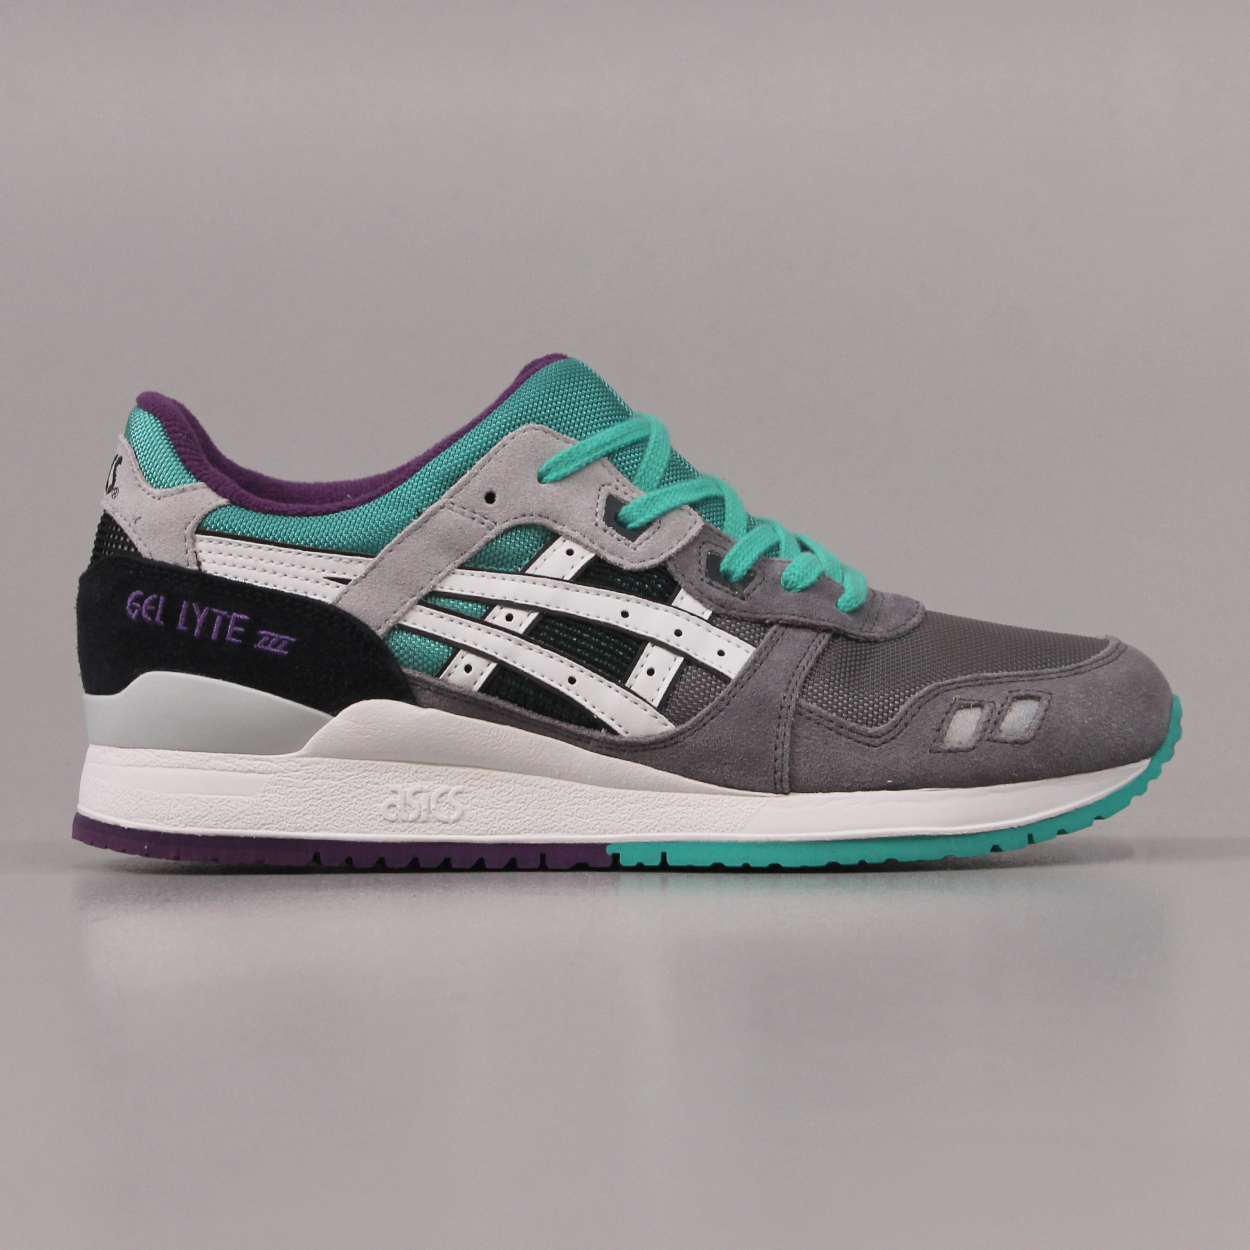 the best attitude 7ff4a 164cd Asics Mens Gel Lyte III Retro Running Trainers Grey White ...